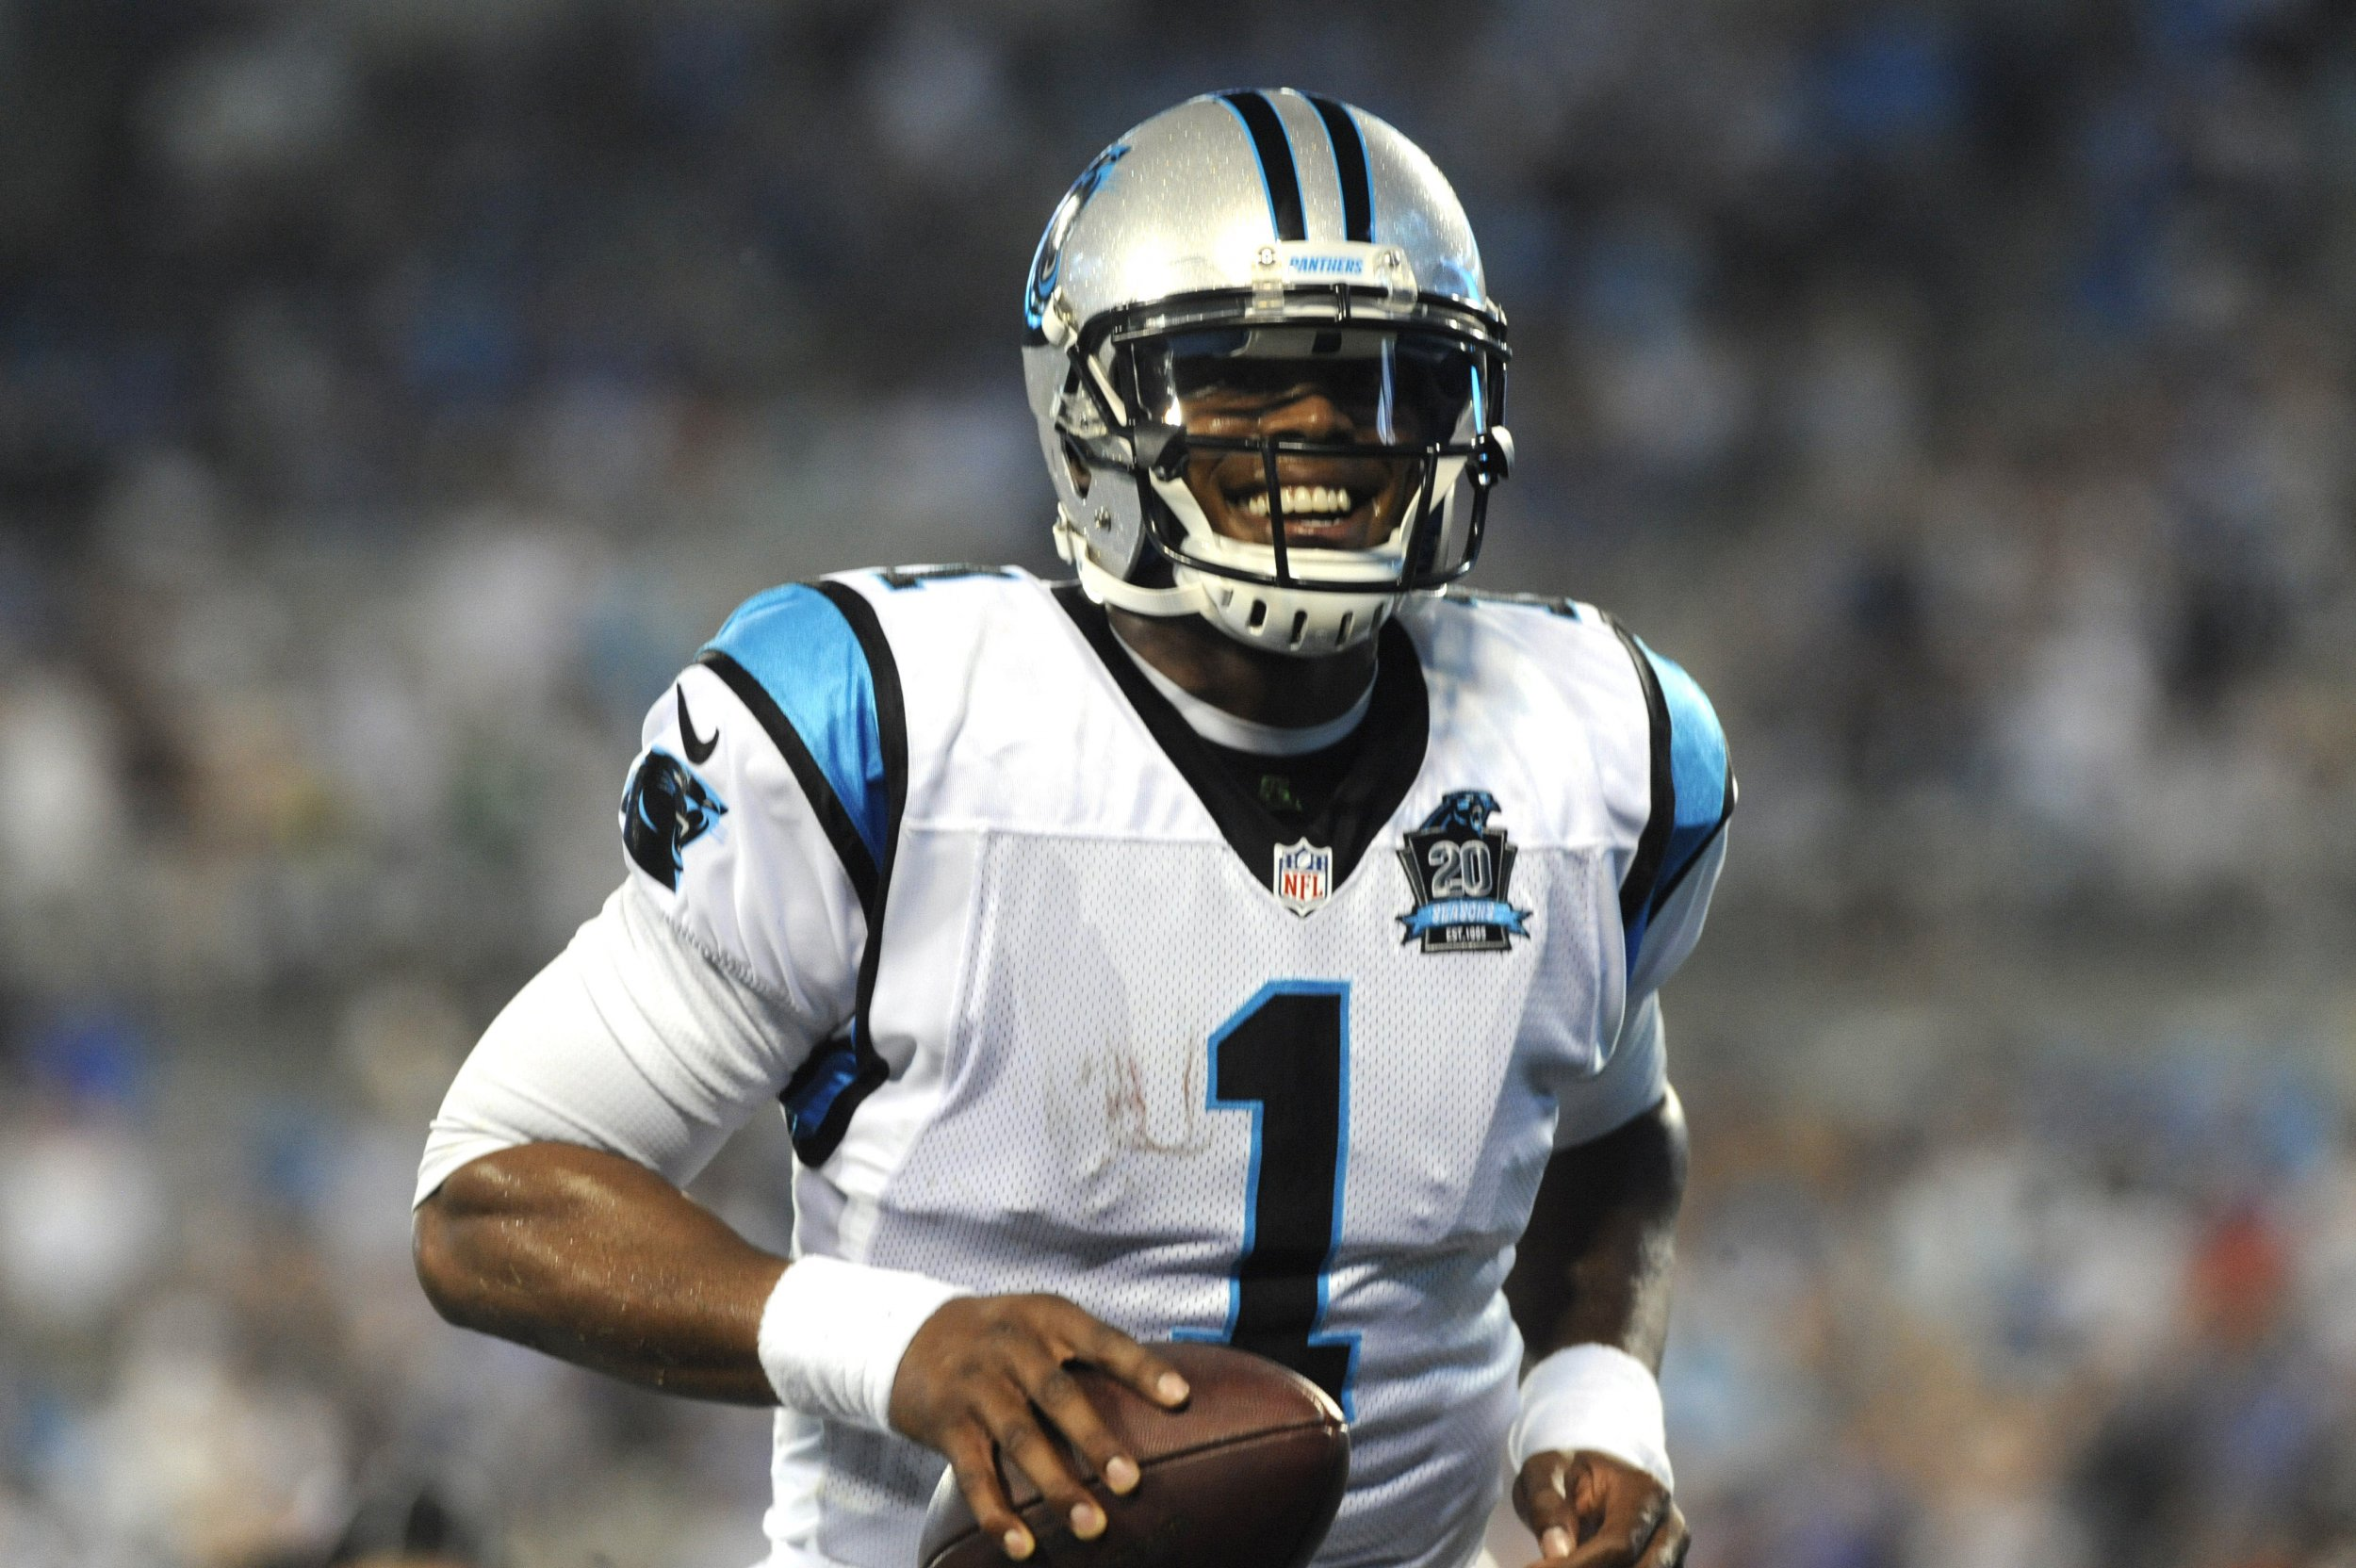 Nfl star cam newton s car accident causes back fractures - Carolina panthers wallpaper cam newton ...